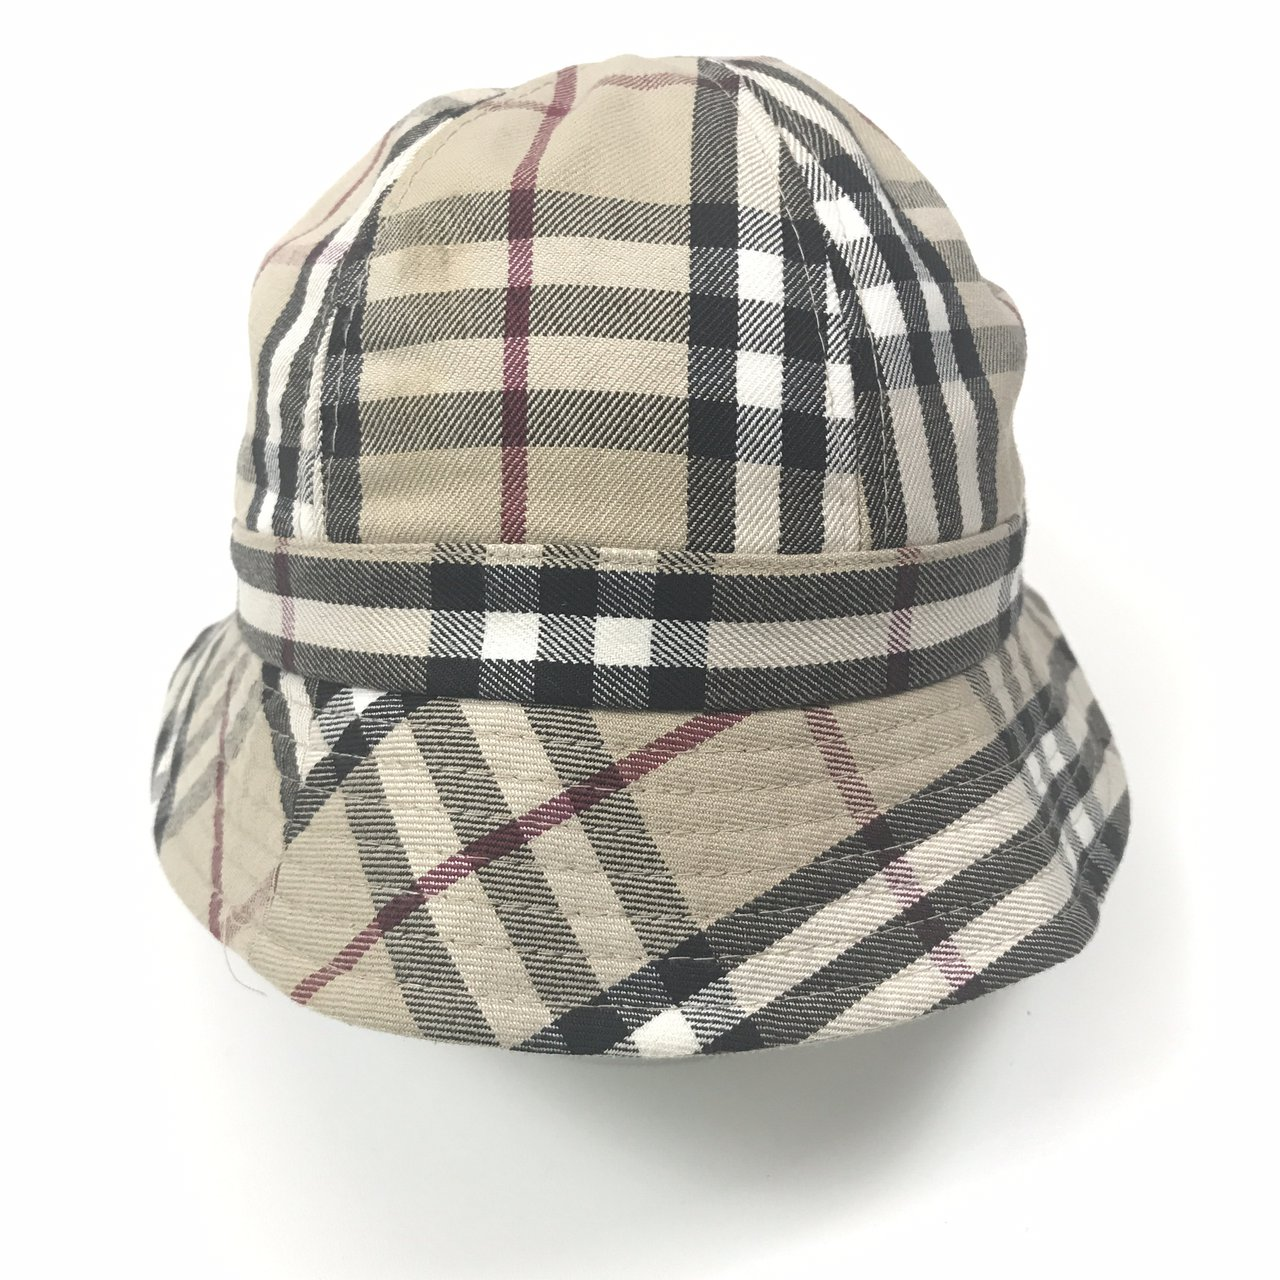 BURBERRY nova check bucket hat men s standard ❌🔥NO OFFERS A - Depop f098c55a1ff